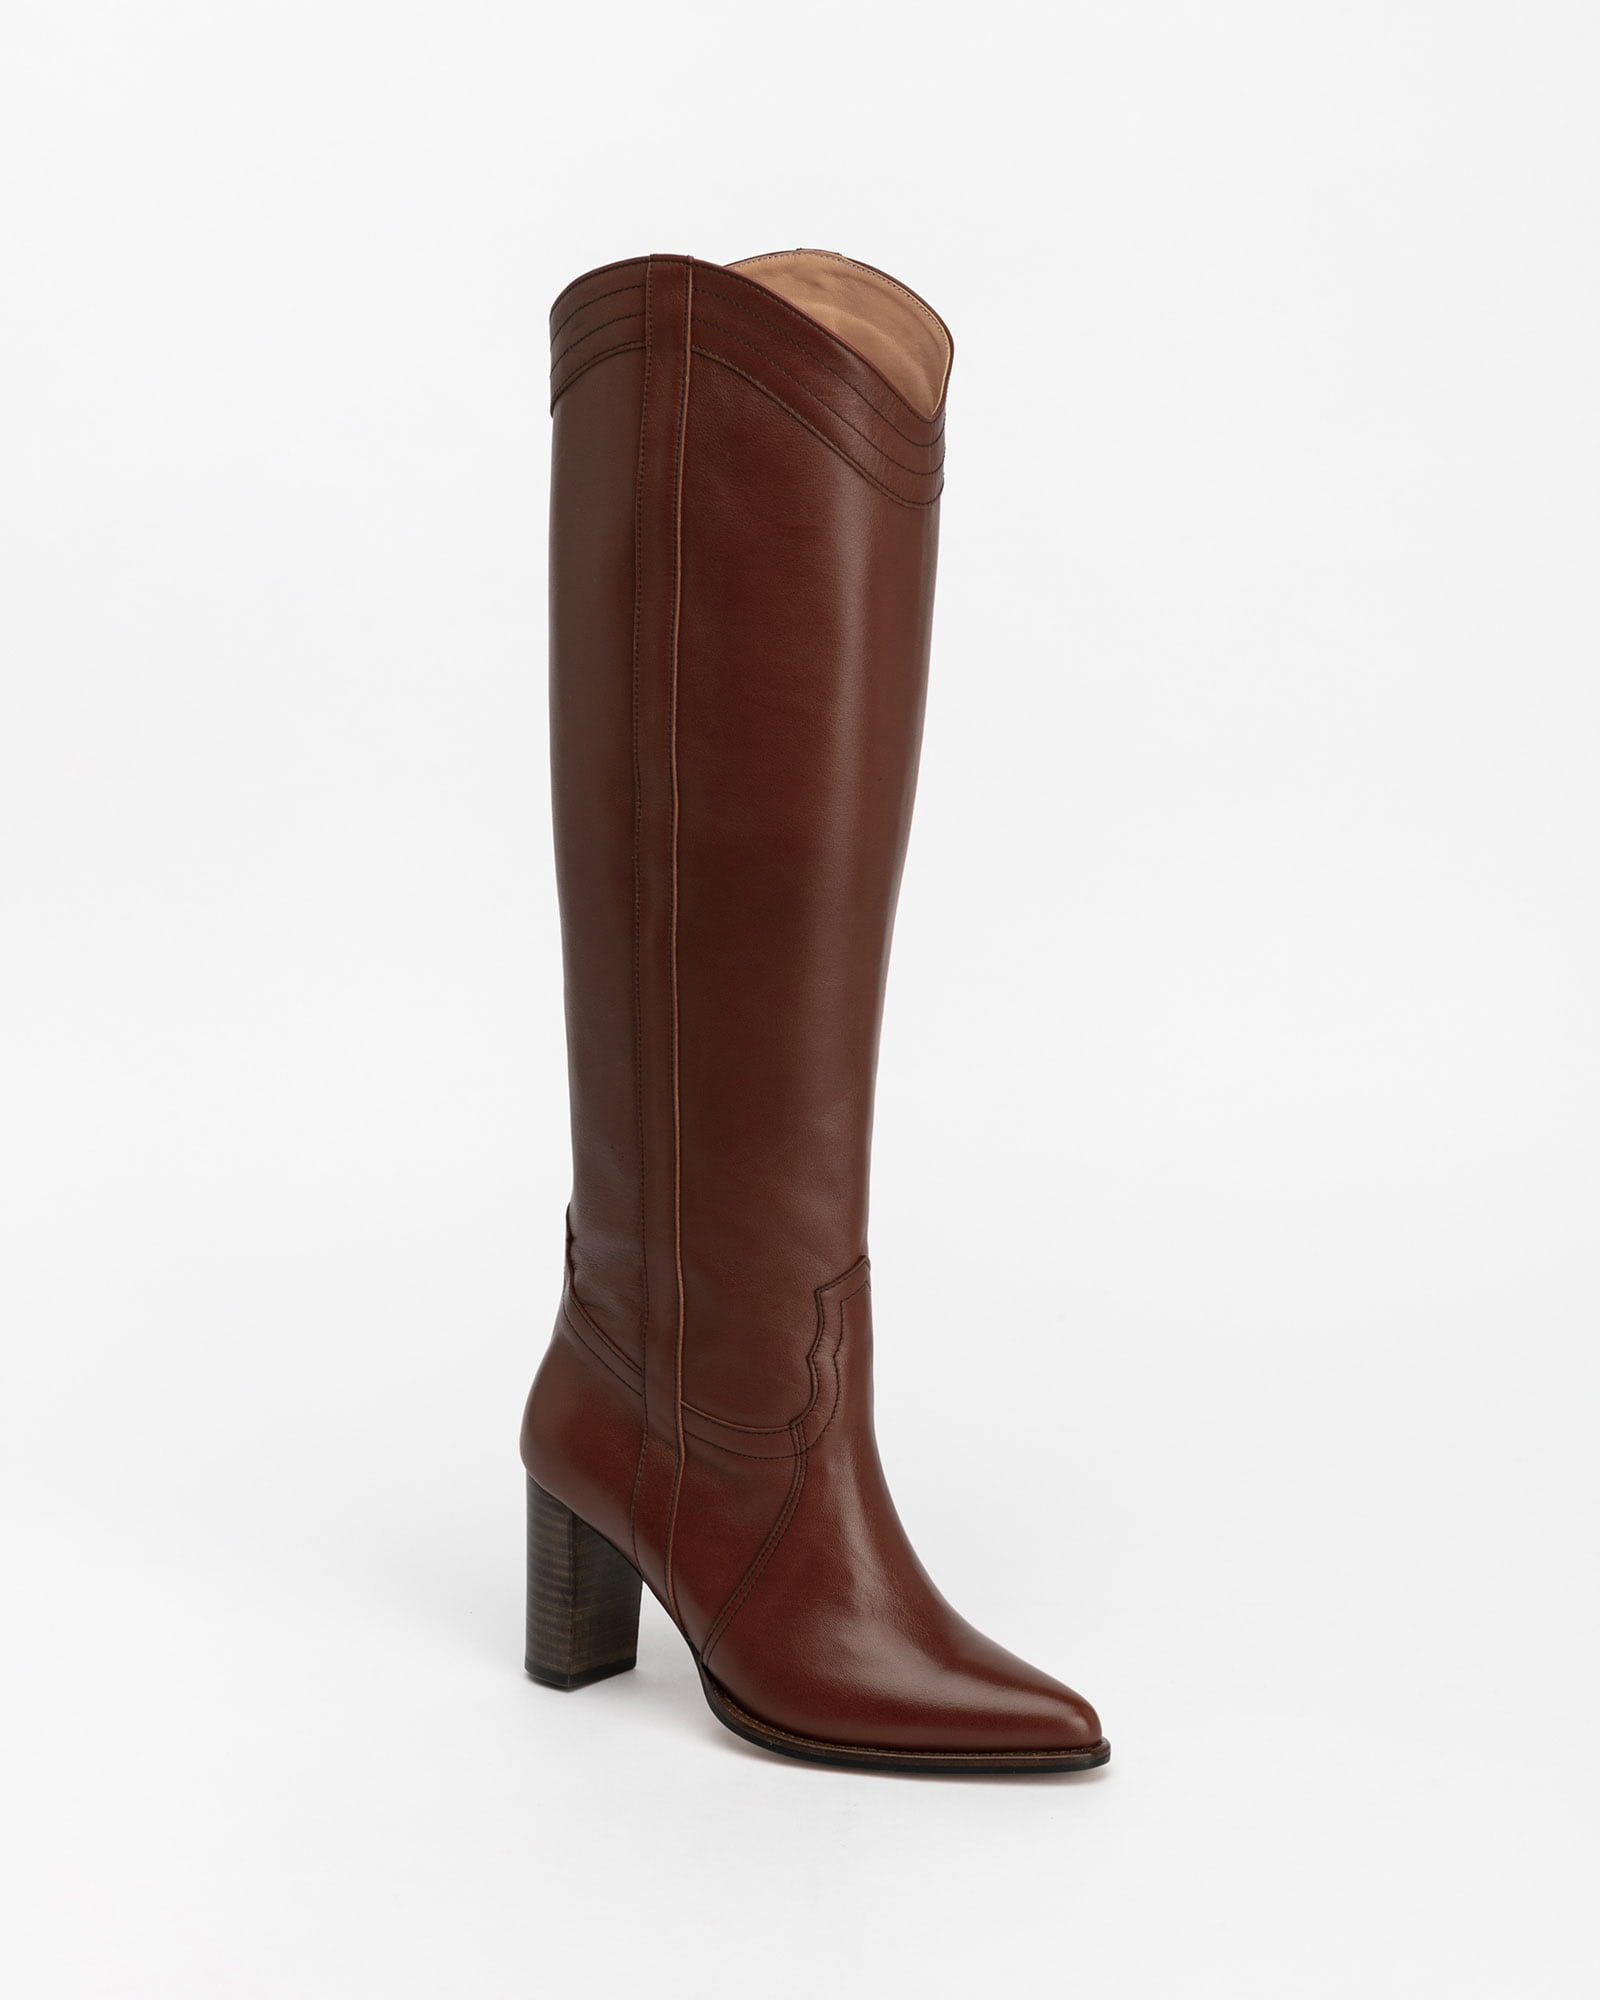 Tanae Cowboy Boots in Brown